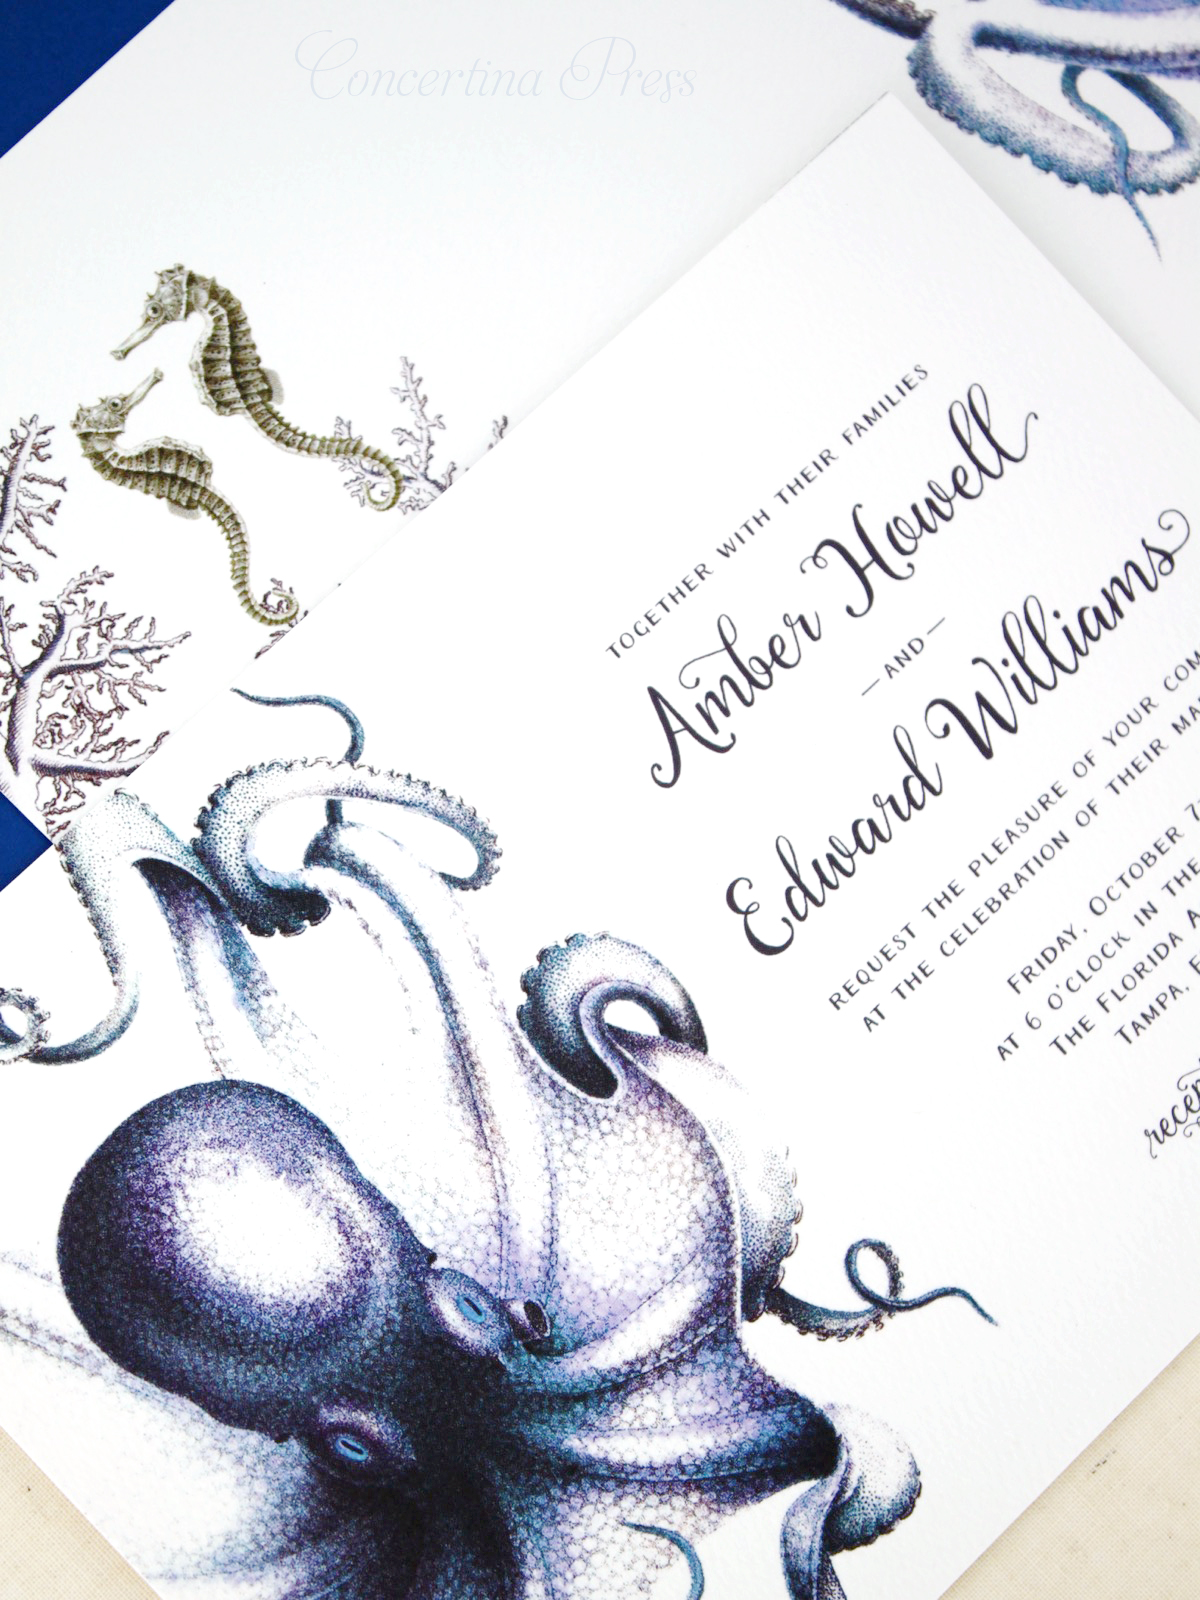 Octopus Wedding Invitations from Concertina Press